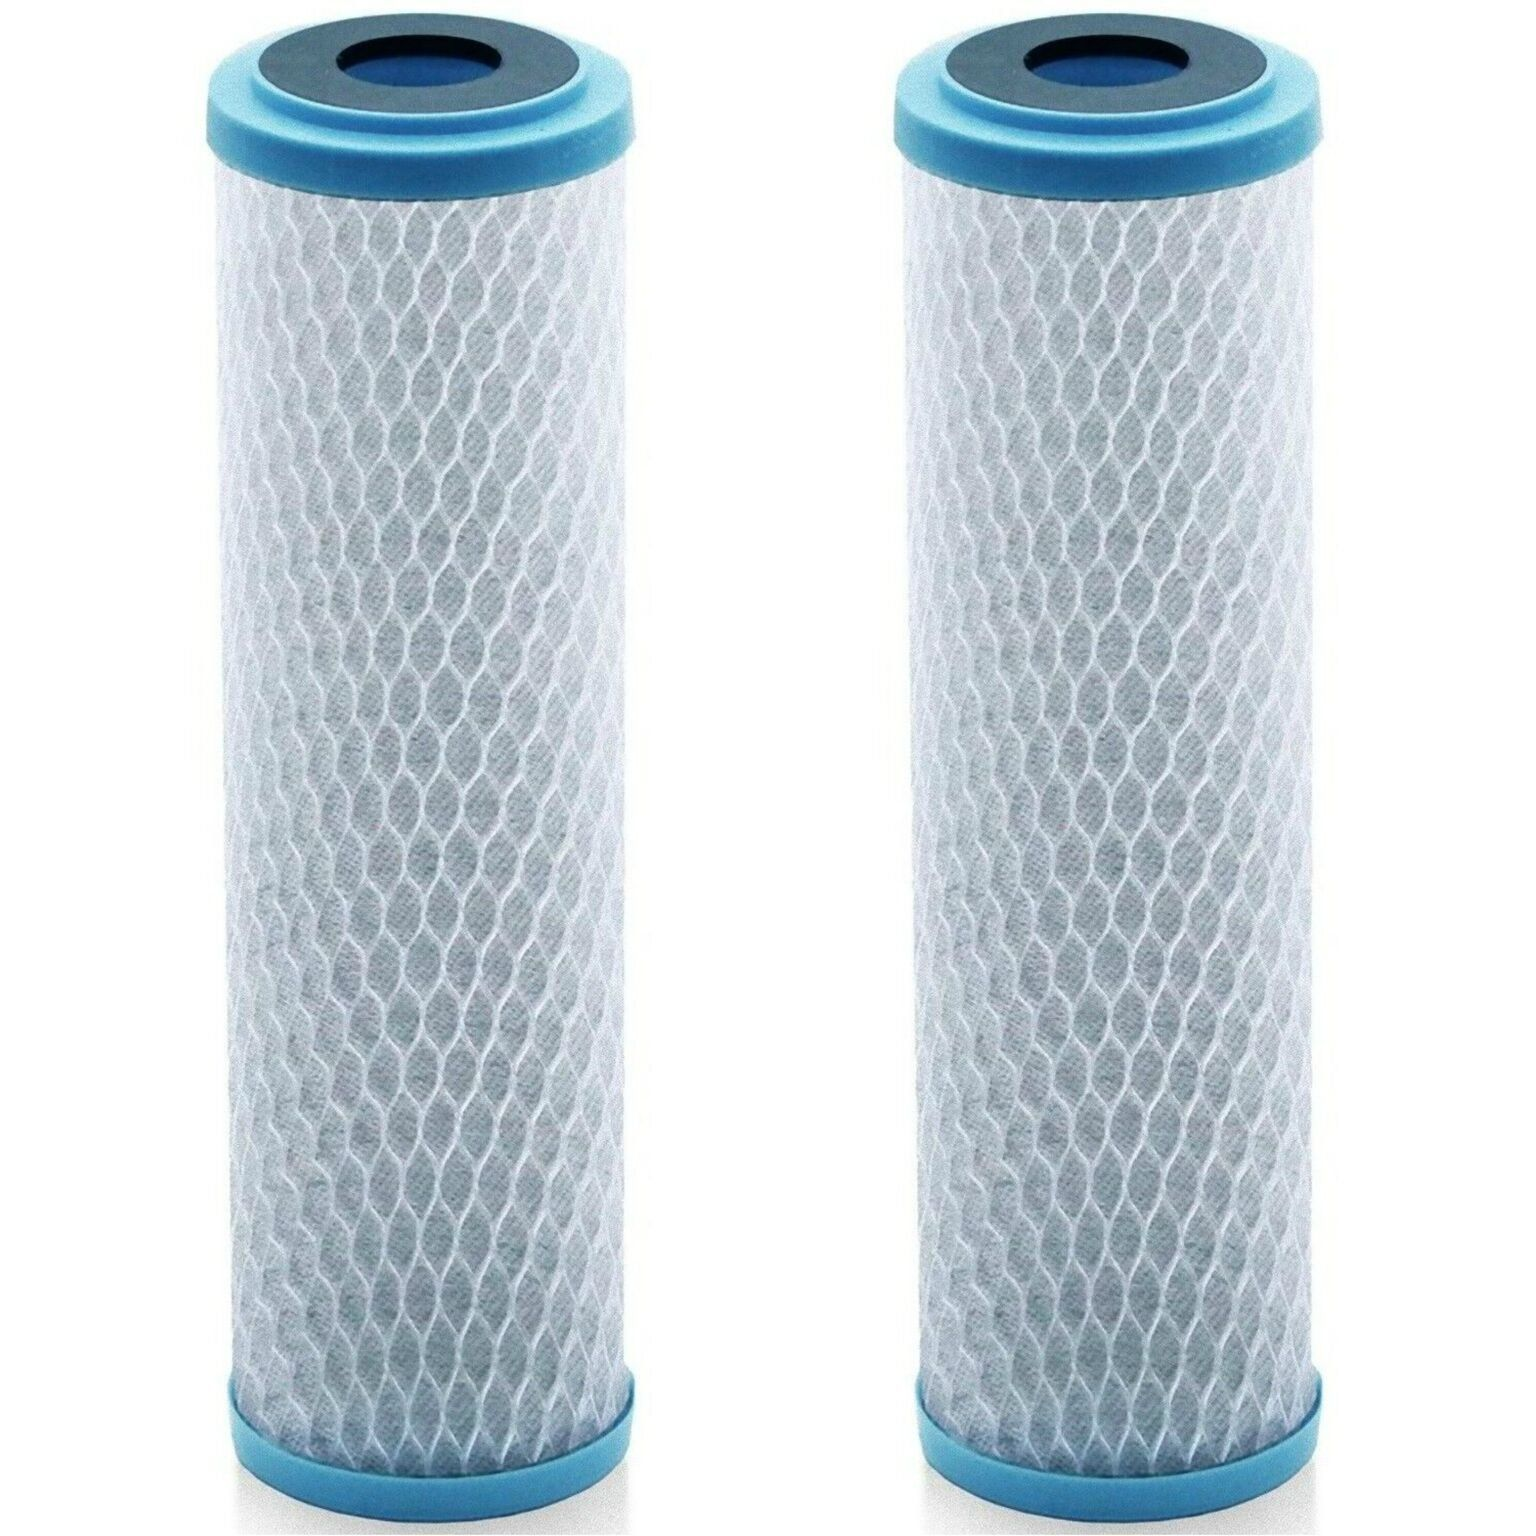 Lake Industries Universal Kdf 55 Activated Carbon Water Filter Cartridge 1 Micron Replacement 10 In 2020 Water Purifier Carbon Water Filter Countertop Water Filter